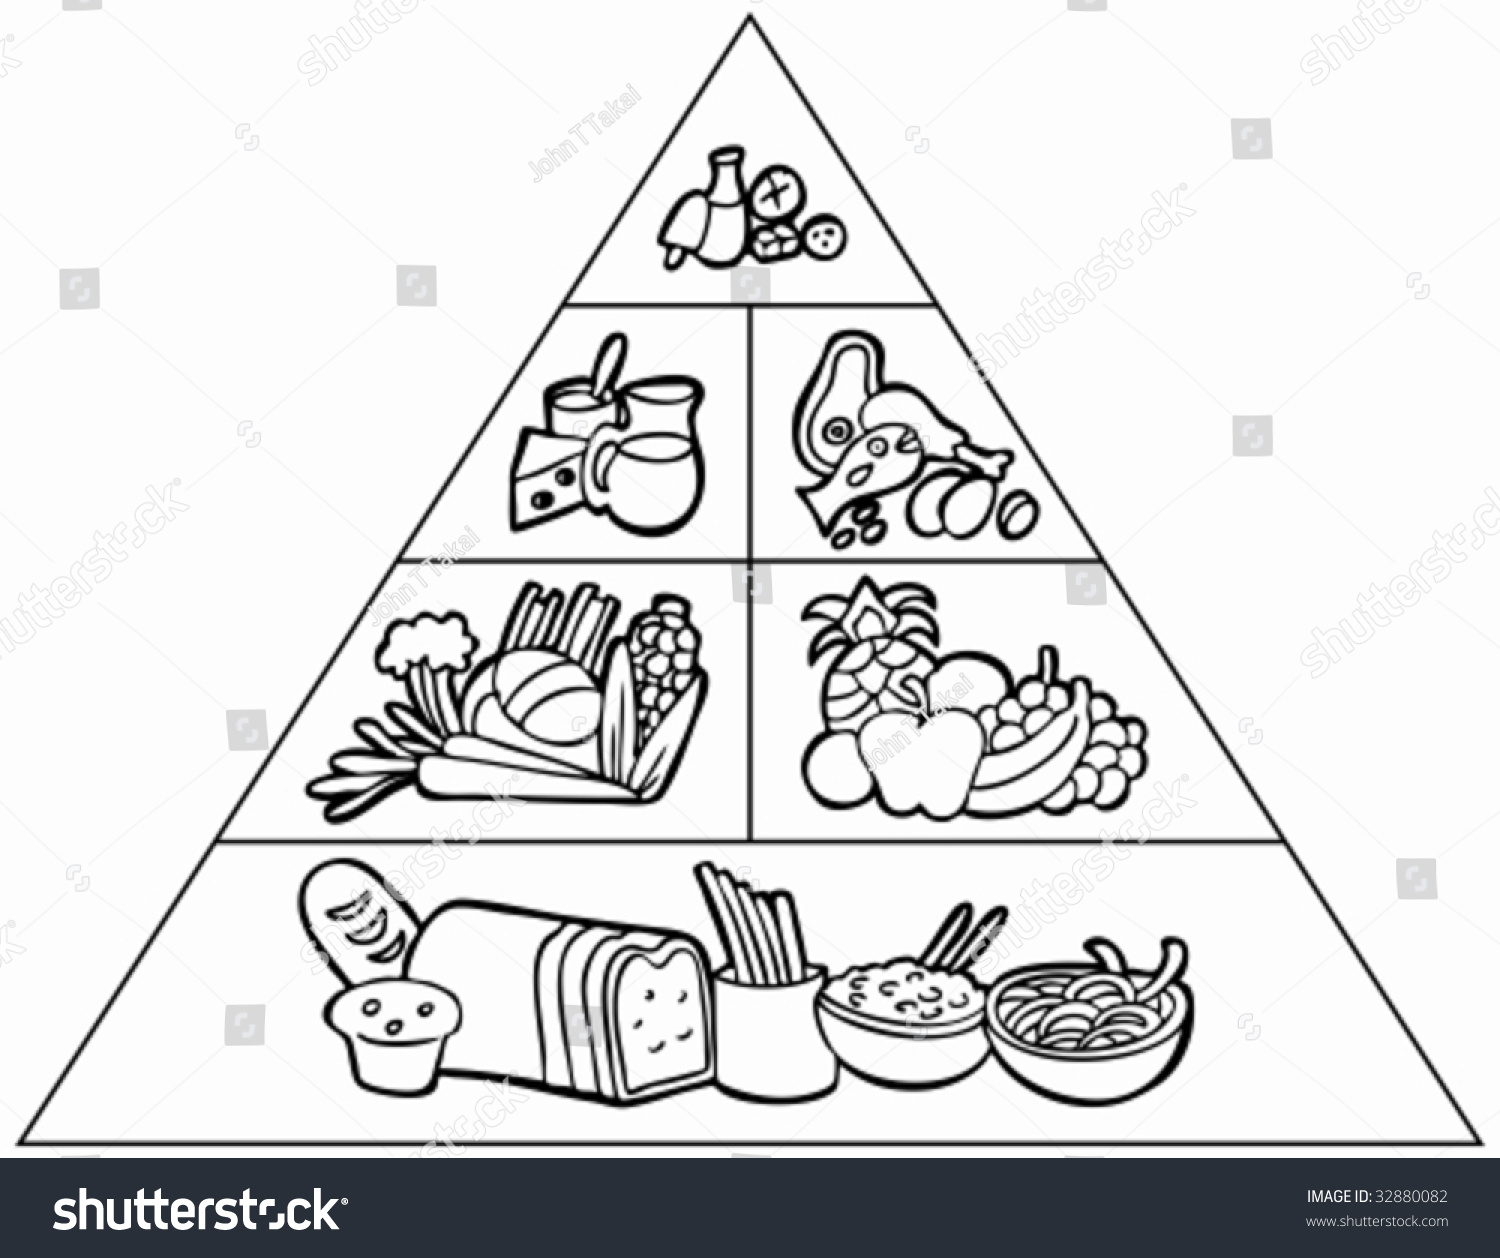 Cartoon Food Pyramid Line Art Stock Vector